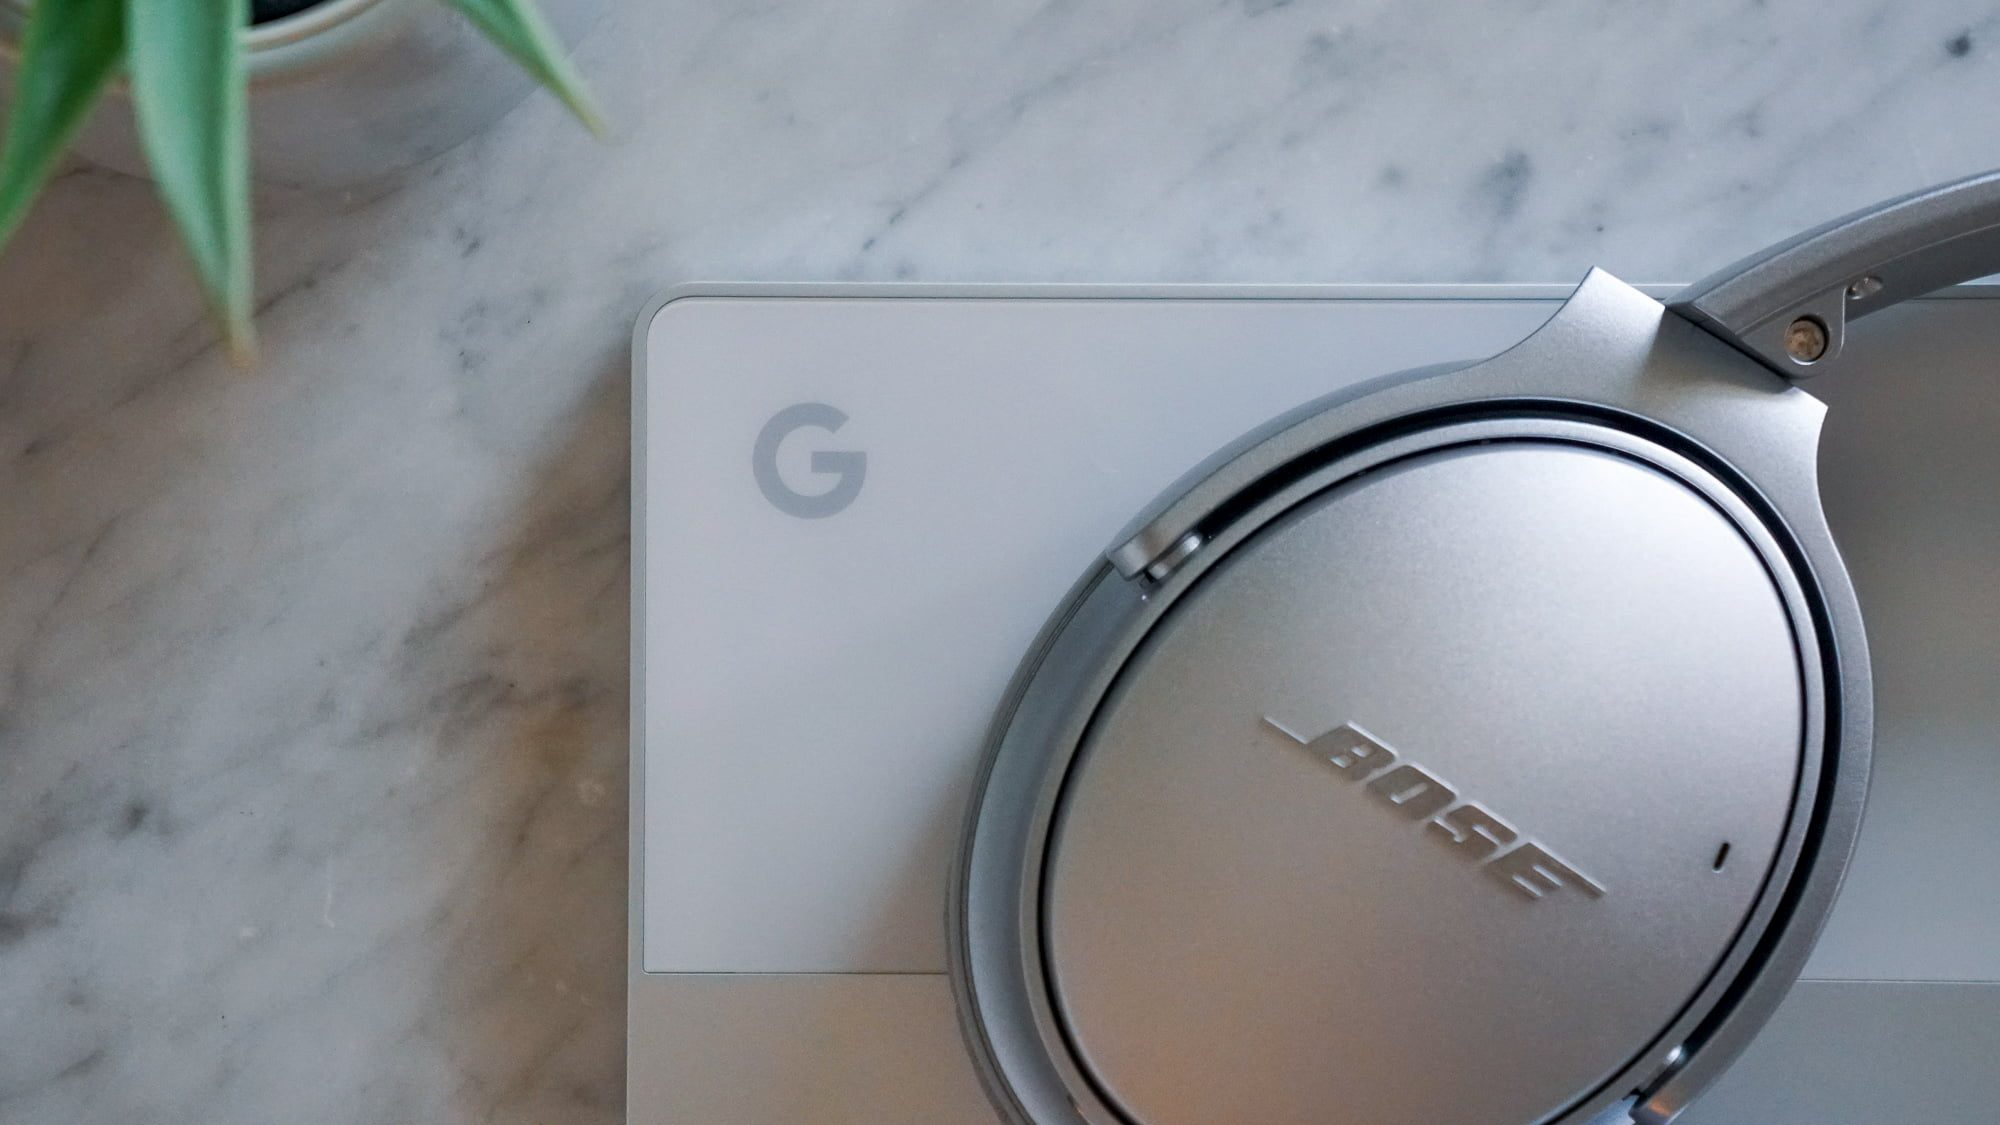 Chrome OS 76 Beta Adds Bluetooth Fast Pairing, But Don't Expect It To Work Well Yet